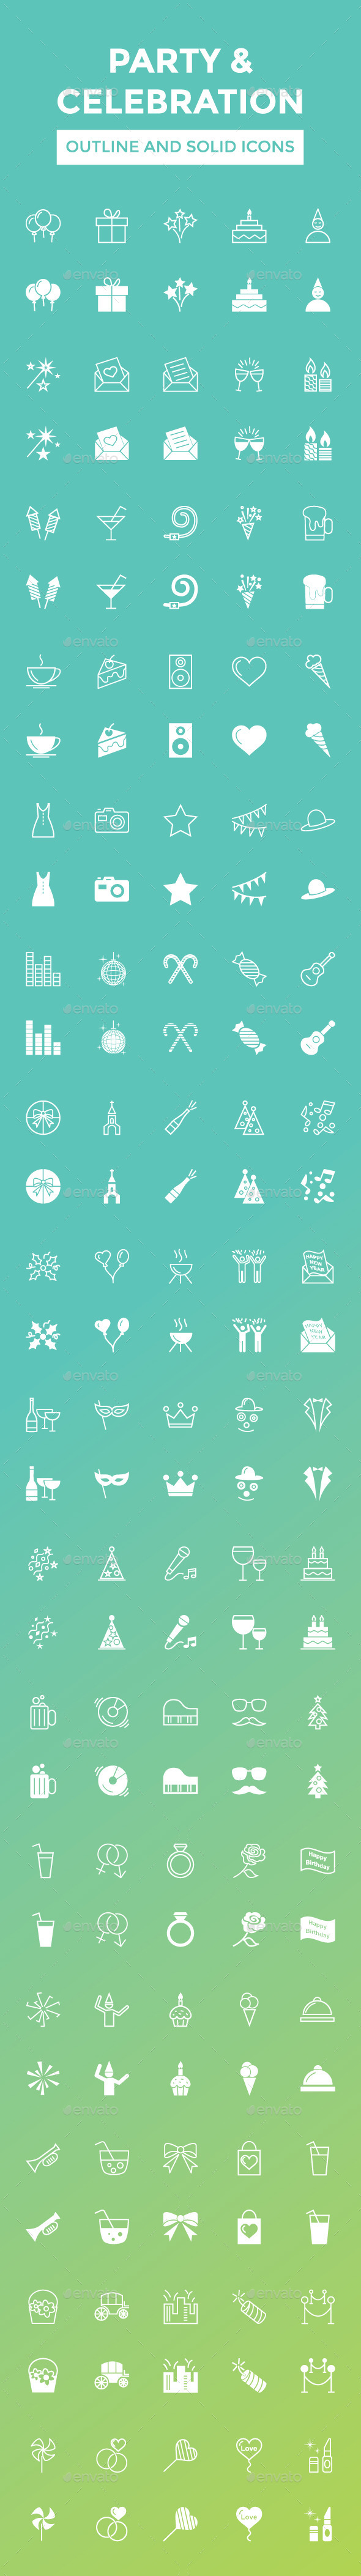 Party and Celebration Vector Icons - Miscellaneous Icons